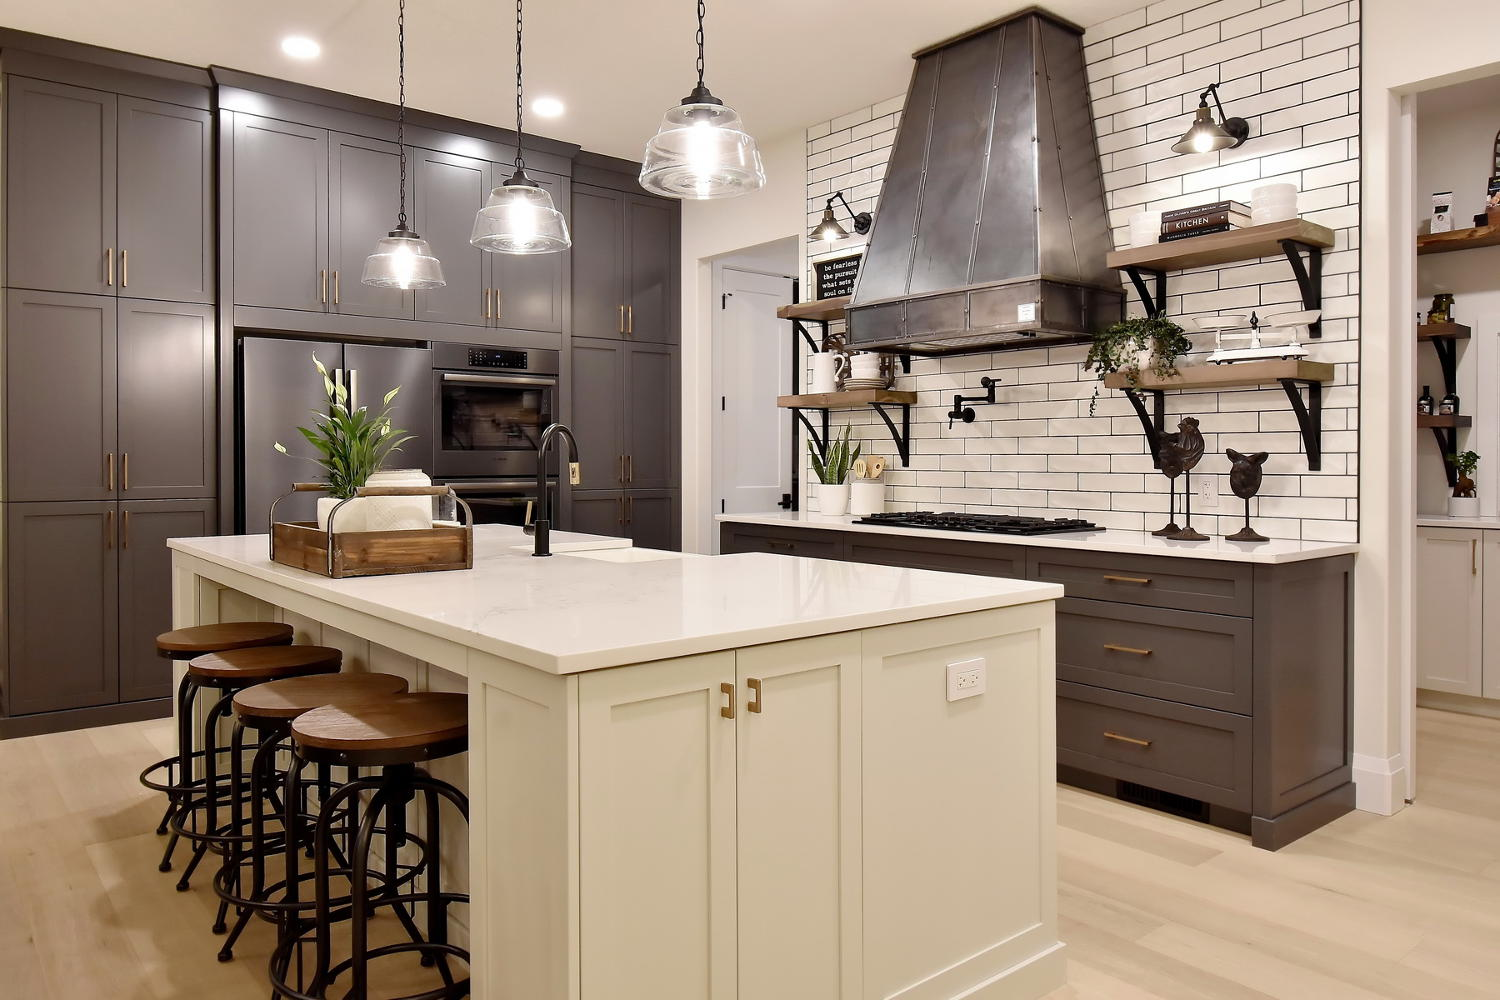 Farmhouse kitchen with matte black fixtures